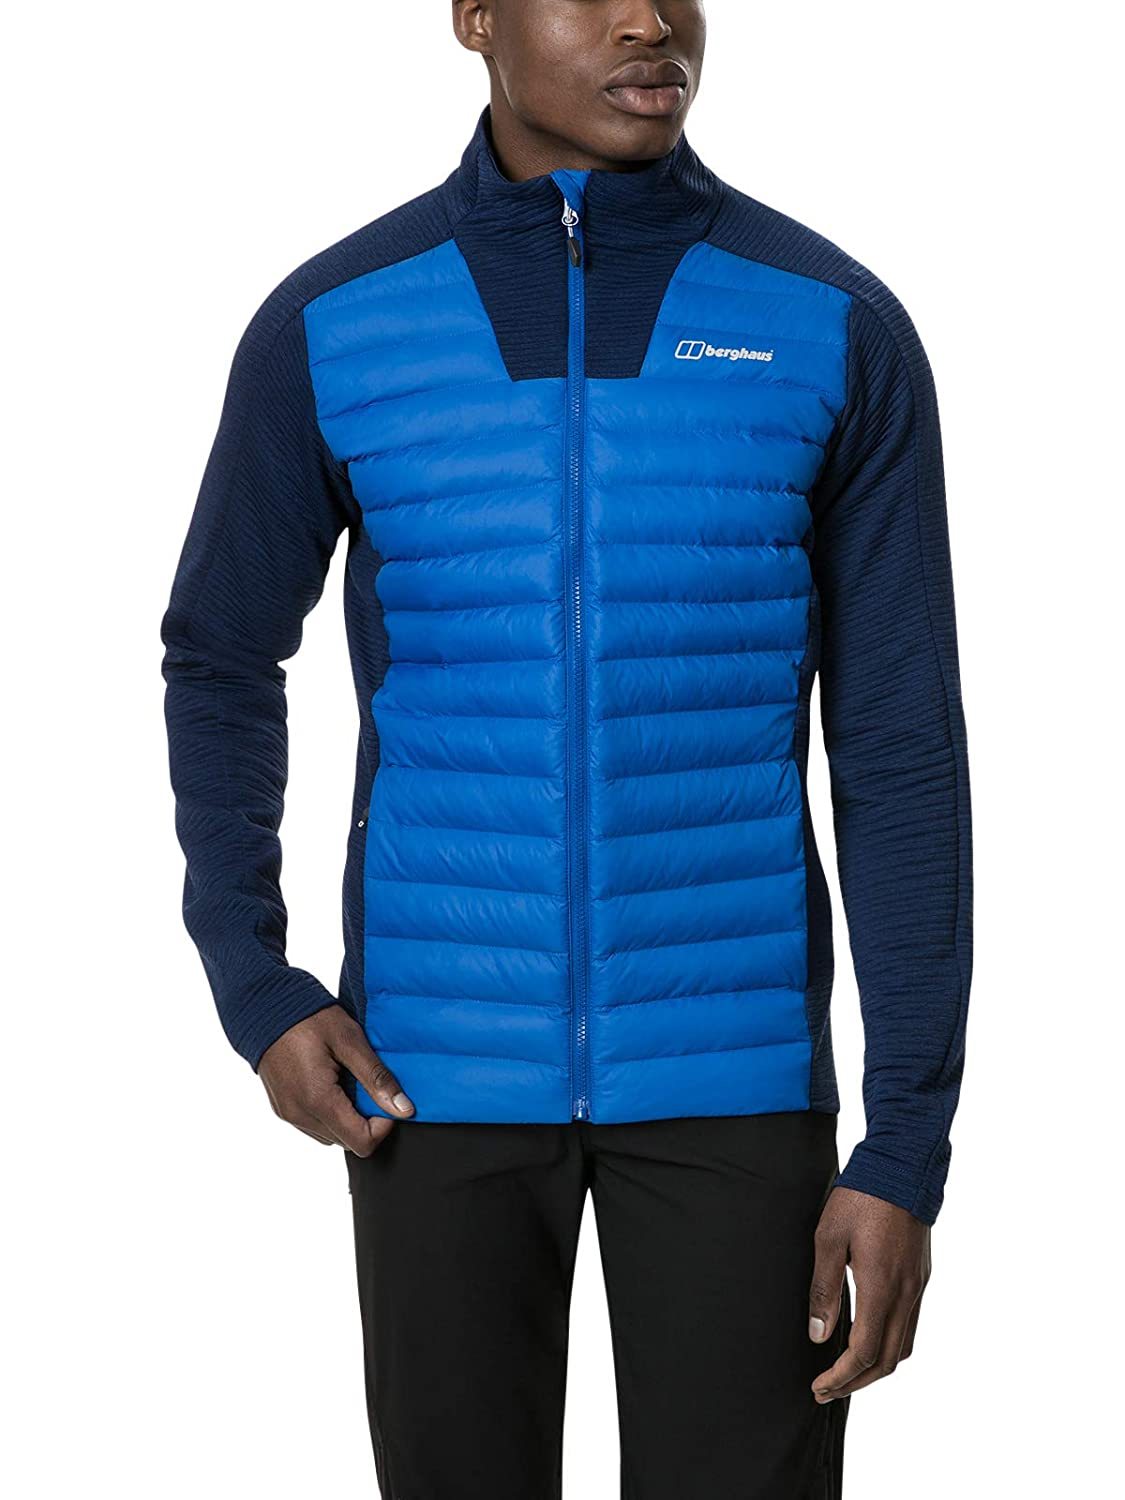 berghaus Mens Hottar Hybrid Synthetic Insulated Jacket